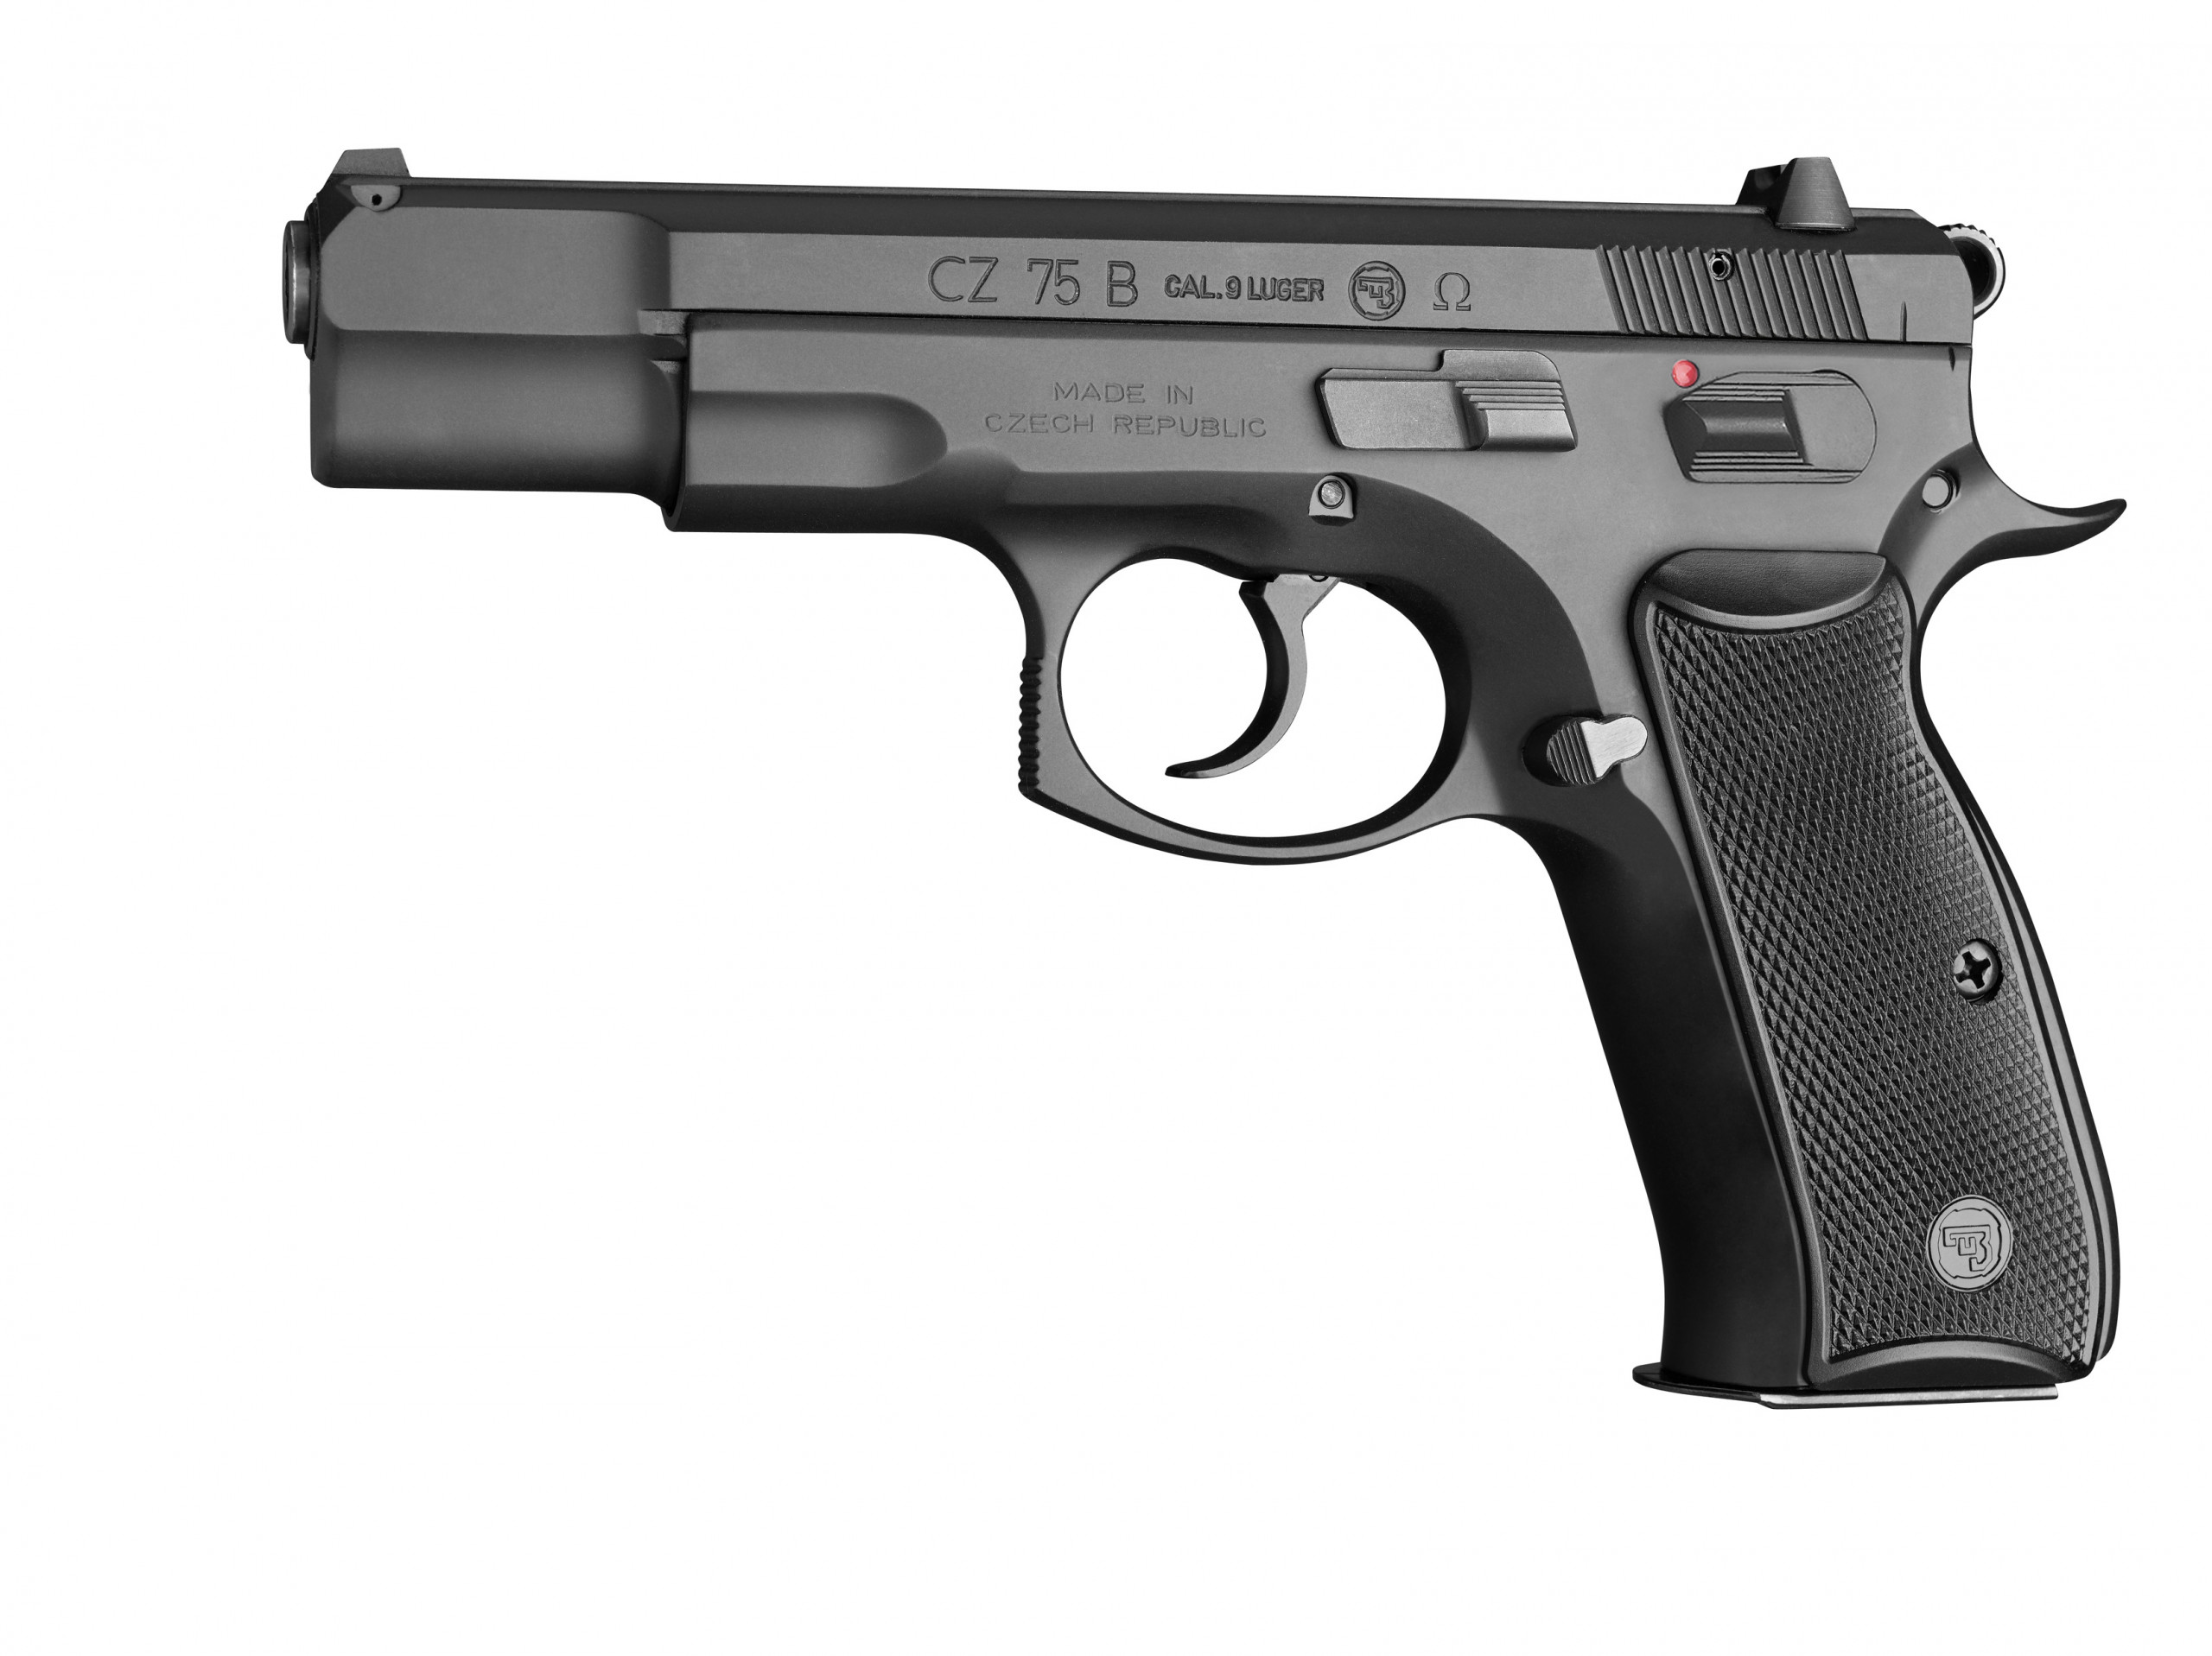 Get the CZ 75 B Omega from P.B.Dionisio & Co.